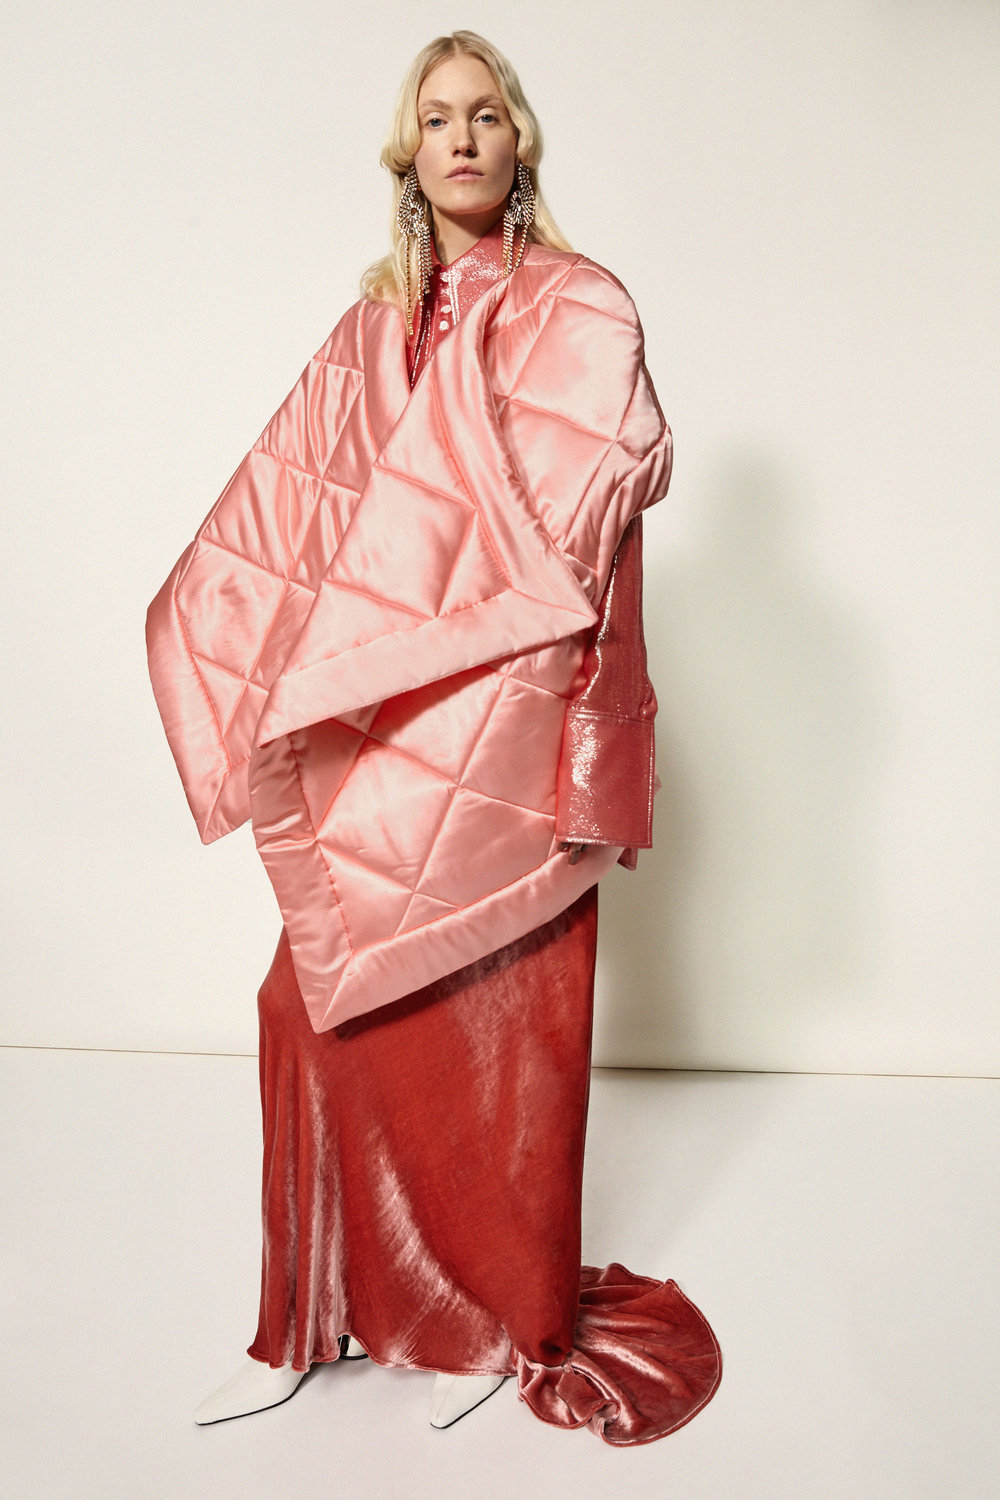 ELLERY_FALL19_PHOTOGRAPHER_KYMELLERY_LOOK7.jpg